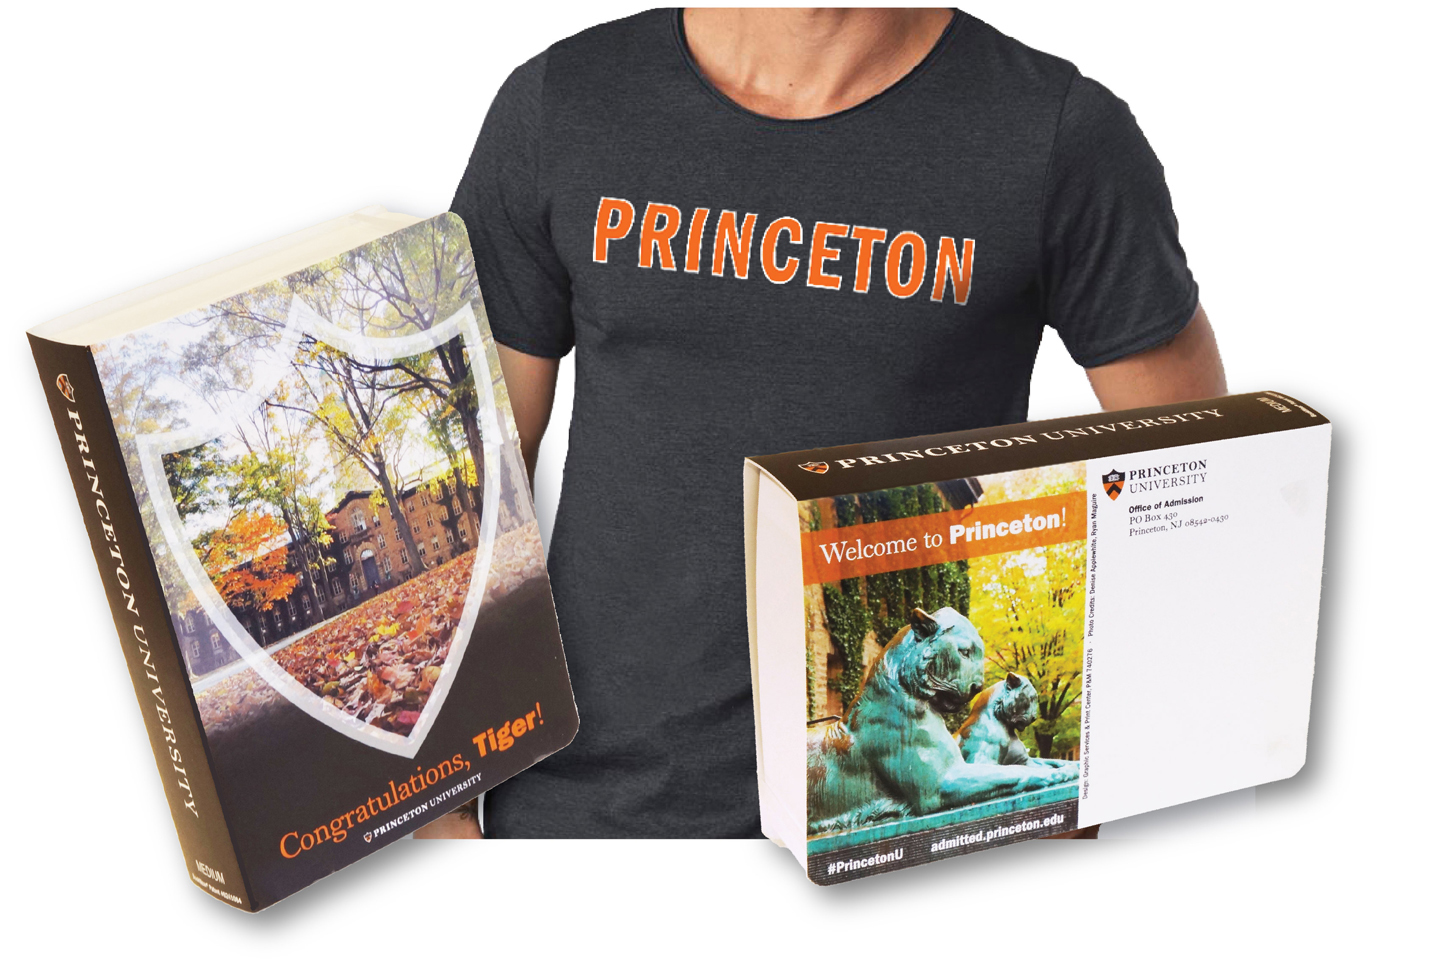 Tshirt Swag Ideas for College Students Princeton